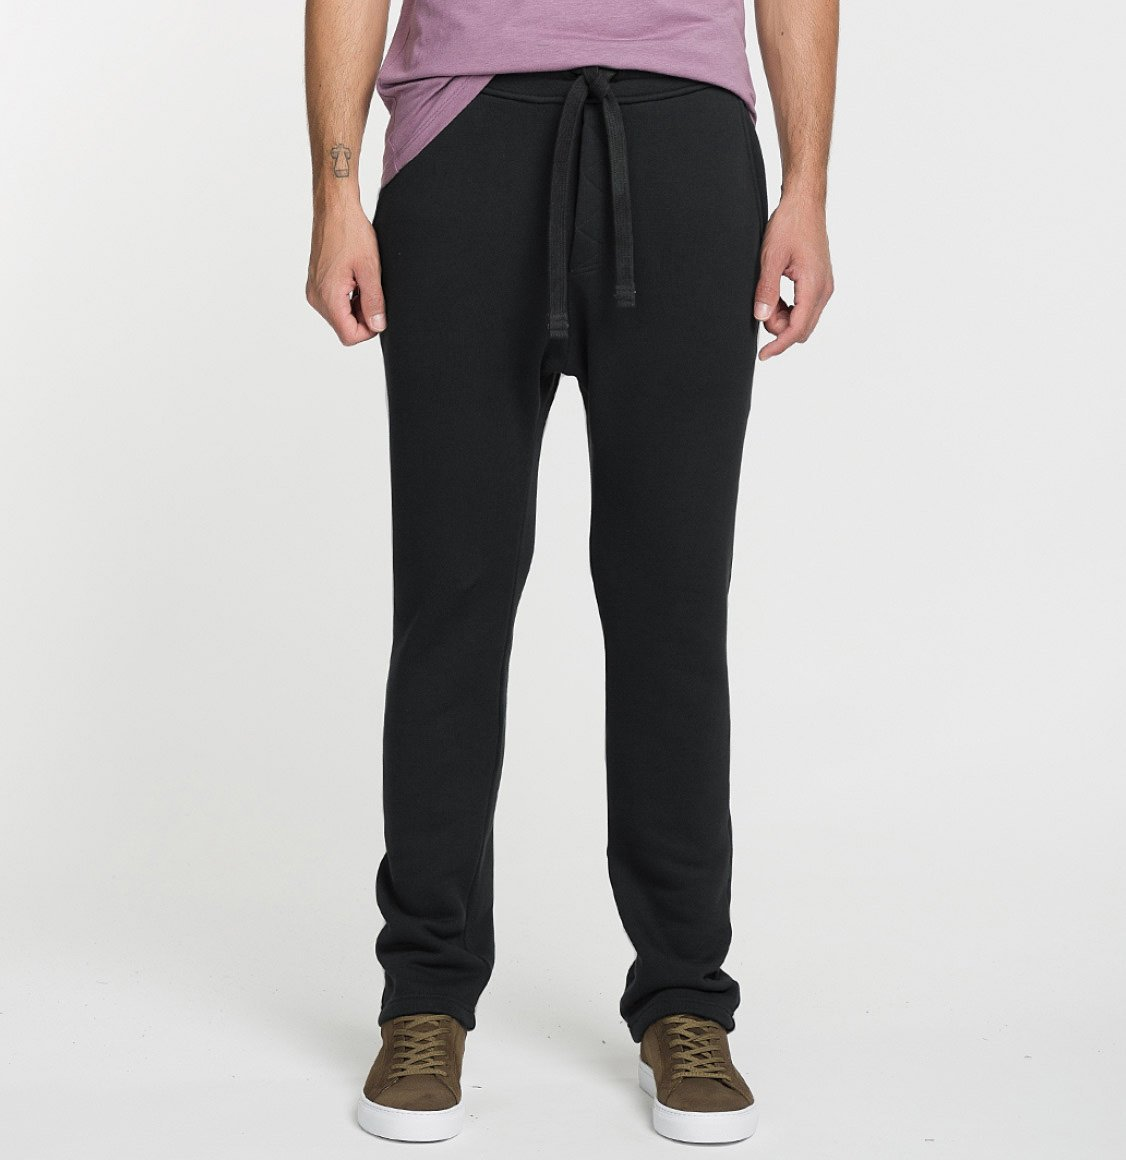 The Project Garments Tapered Loose-Fit Organic Cotton Sweatpants Meteorite Grey